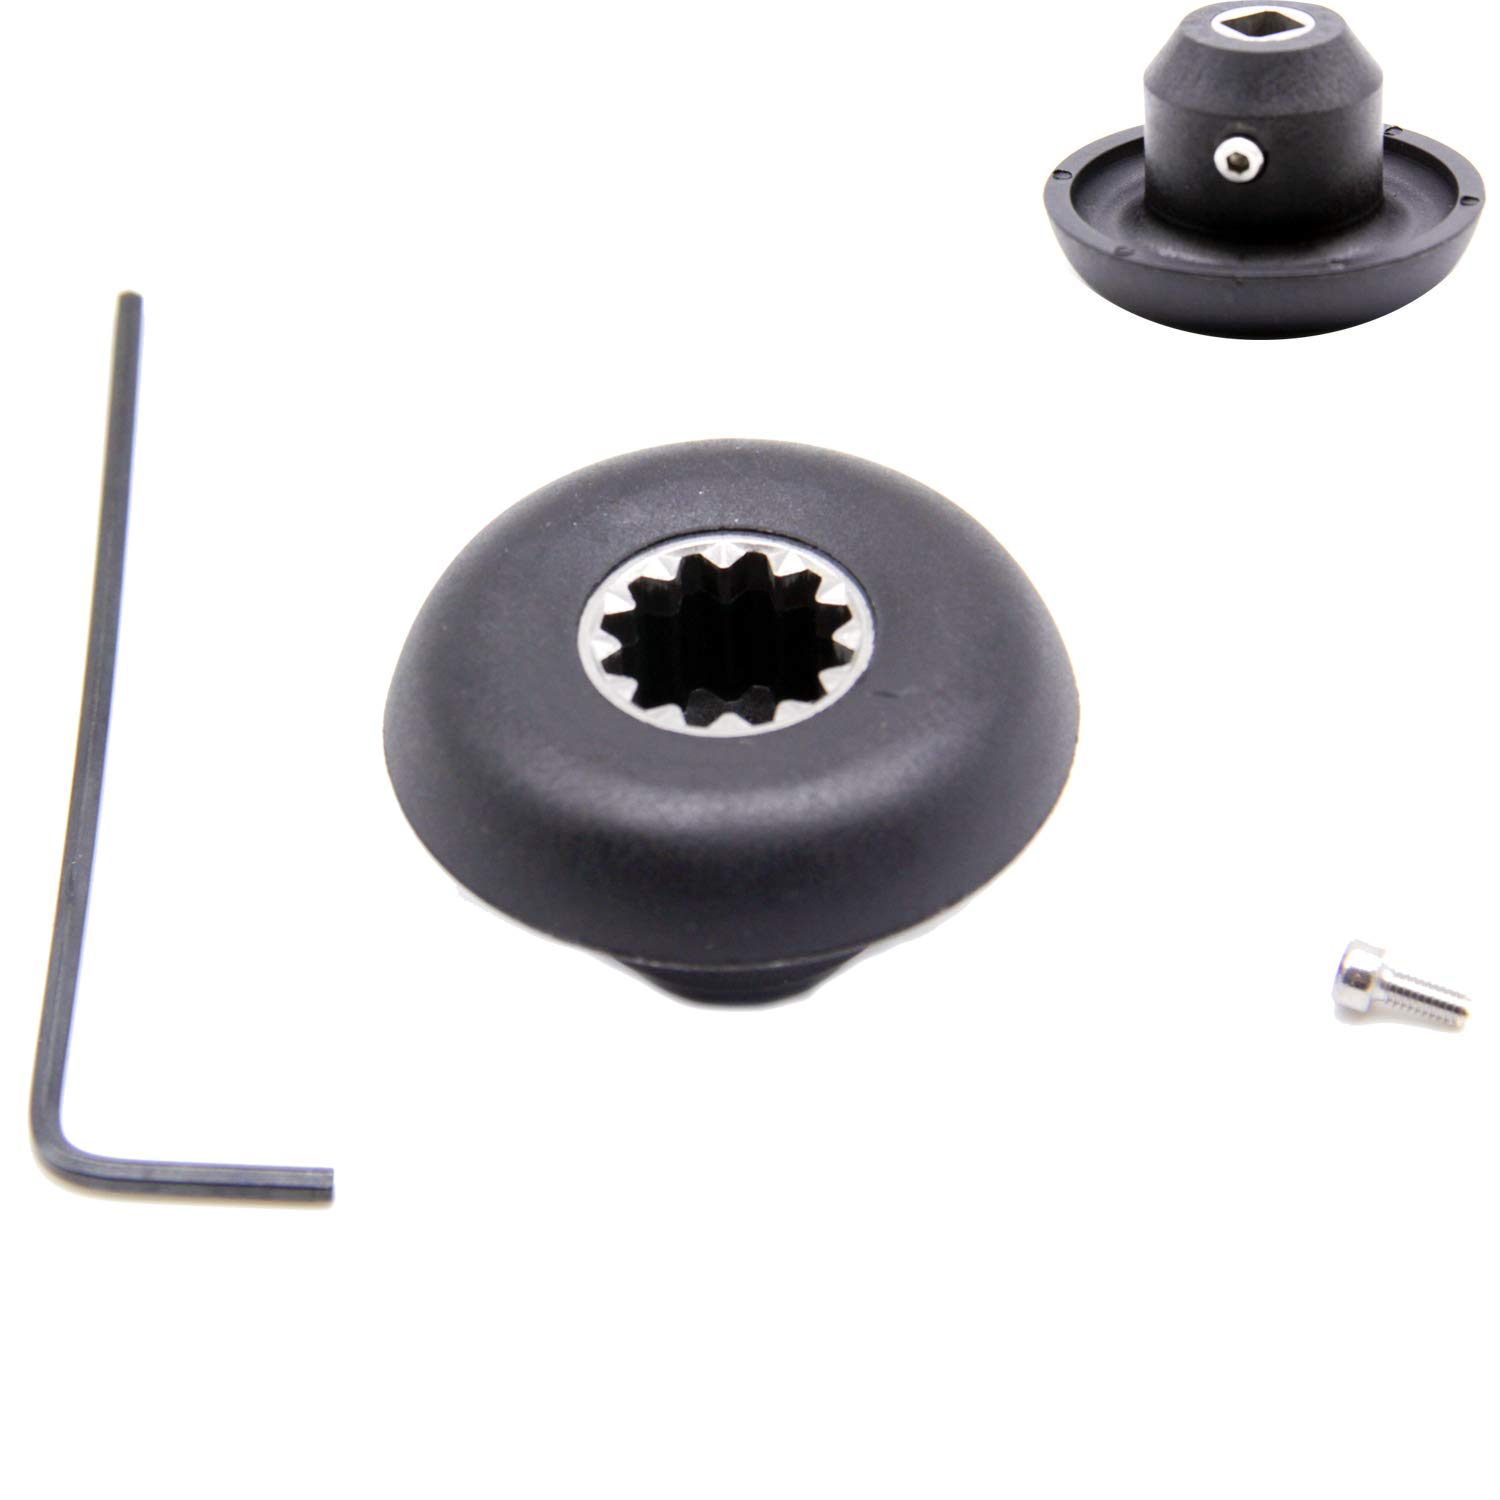 Repair Kit Retainer Nut, Drive Socket, Allen wrench, 891 802 Replacement Part for Vitamix Blenders & Allen Wrench for Vita-mix Blade 5200 5006 5012 5057 5062 Series